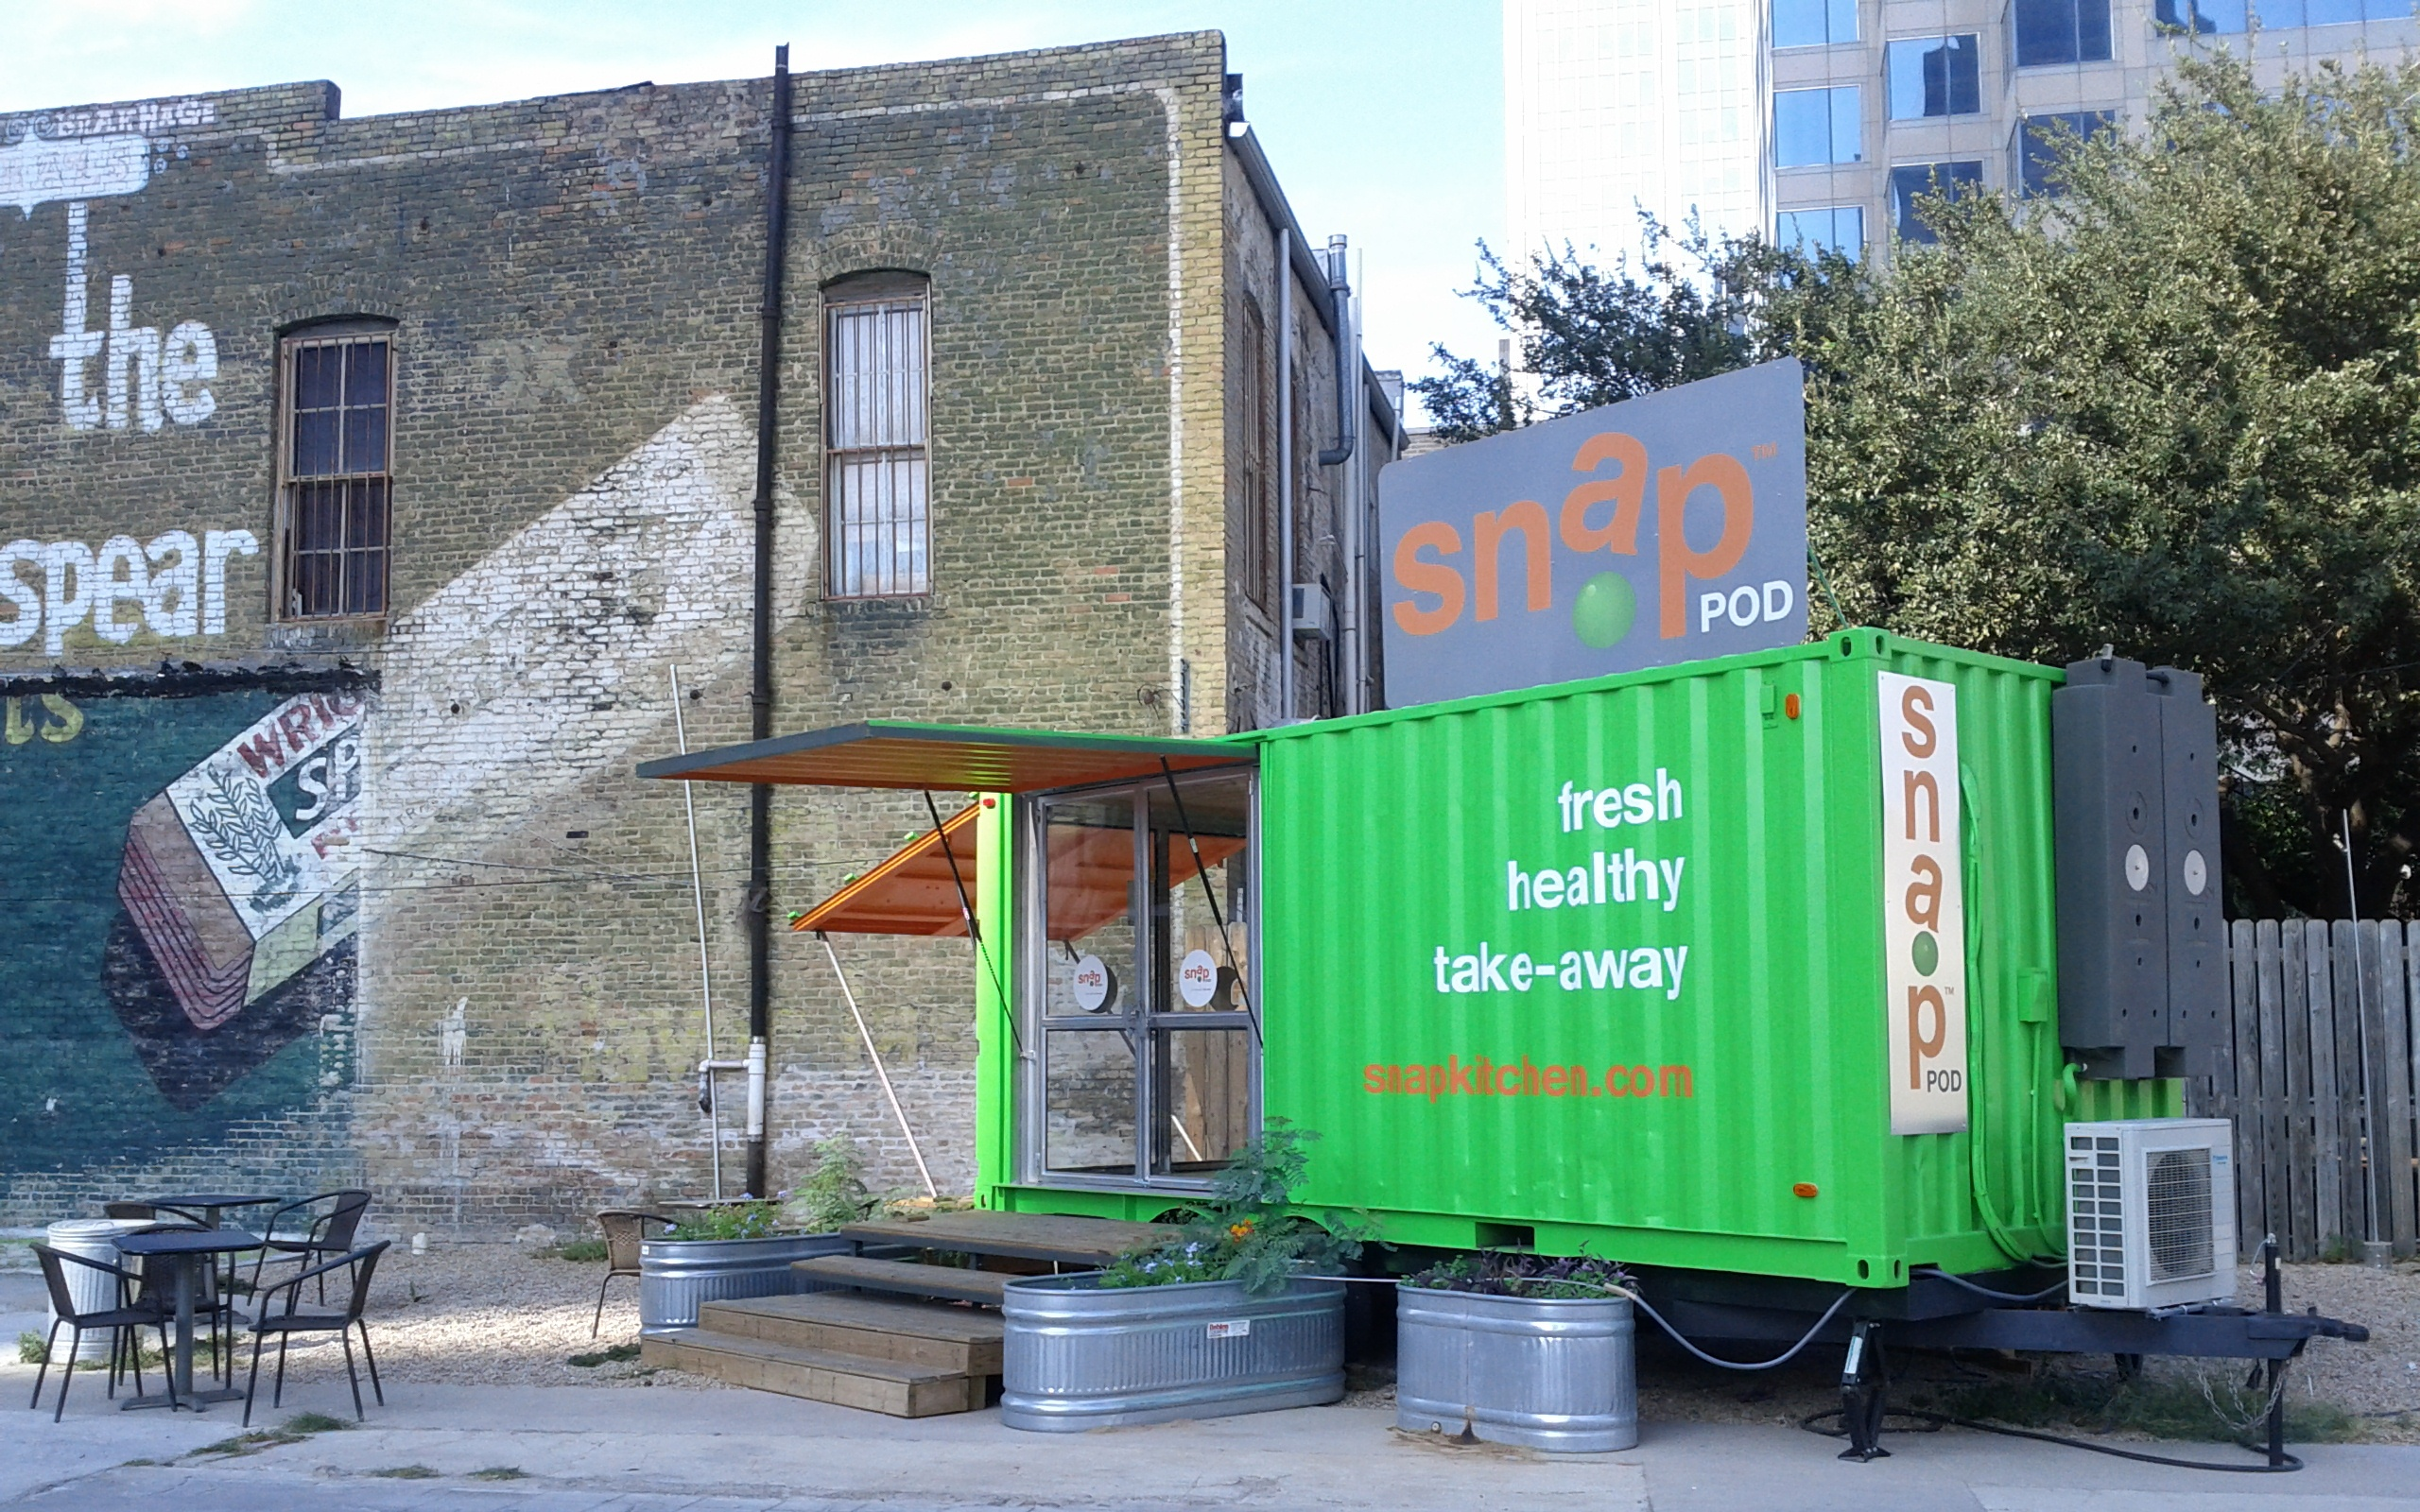 Development Pushes Out Another Food Trailer Court | KUT